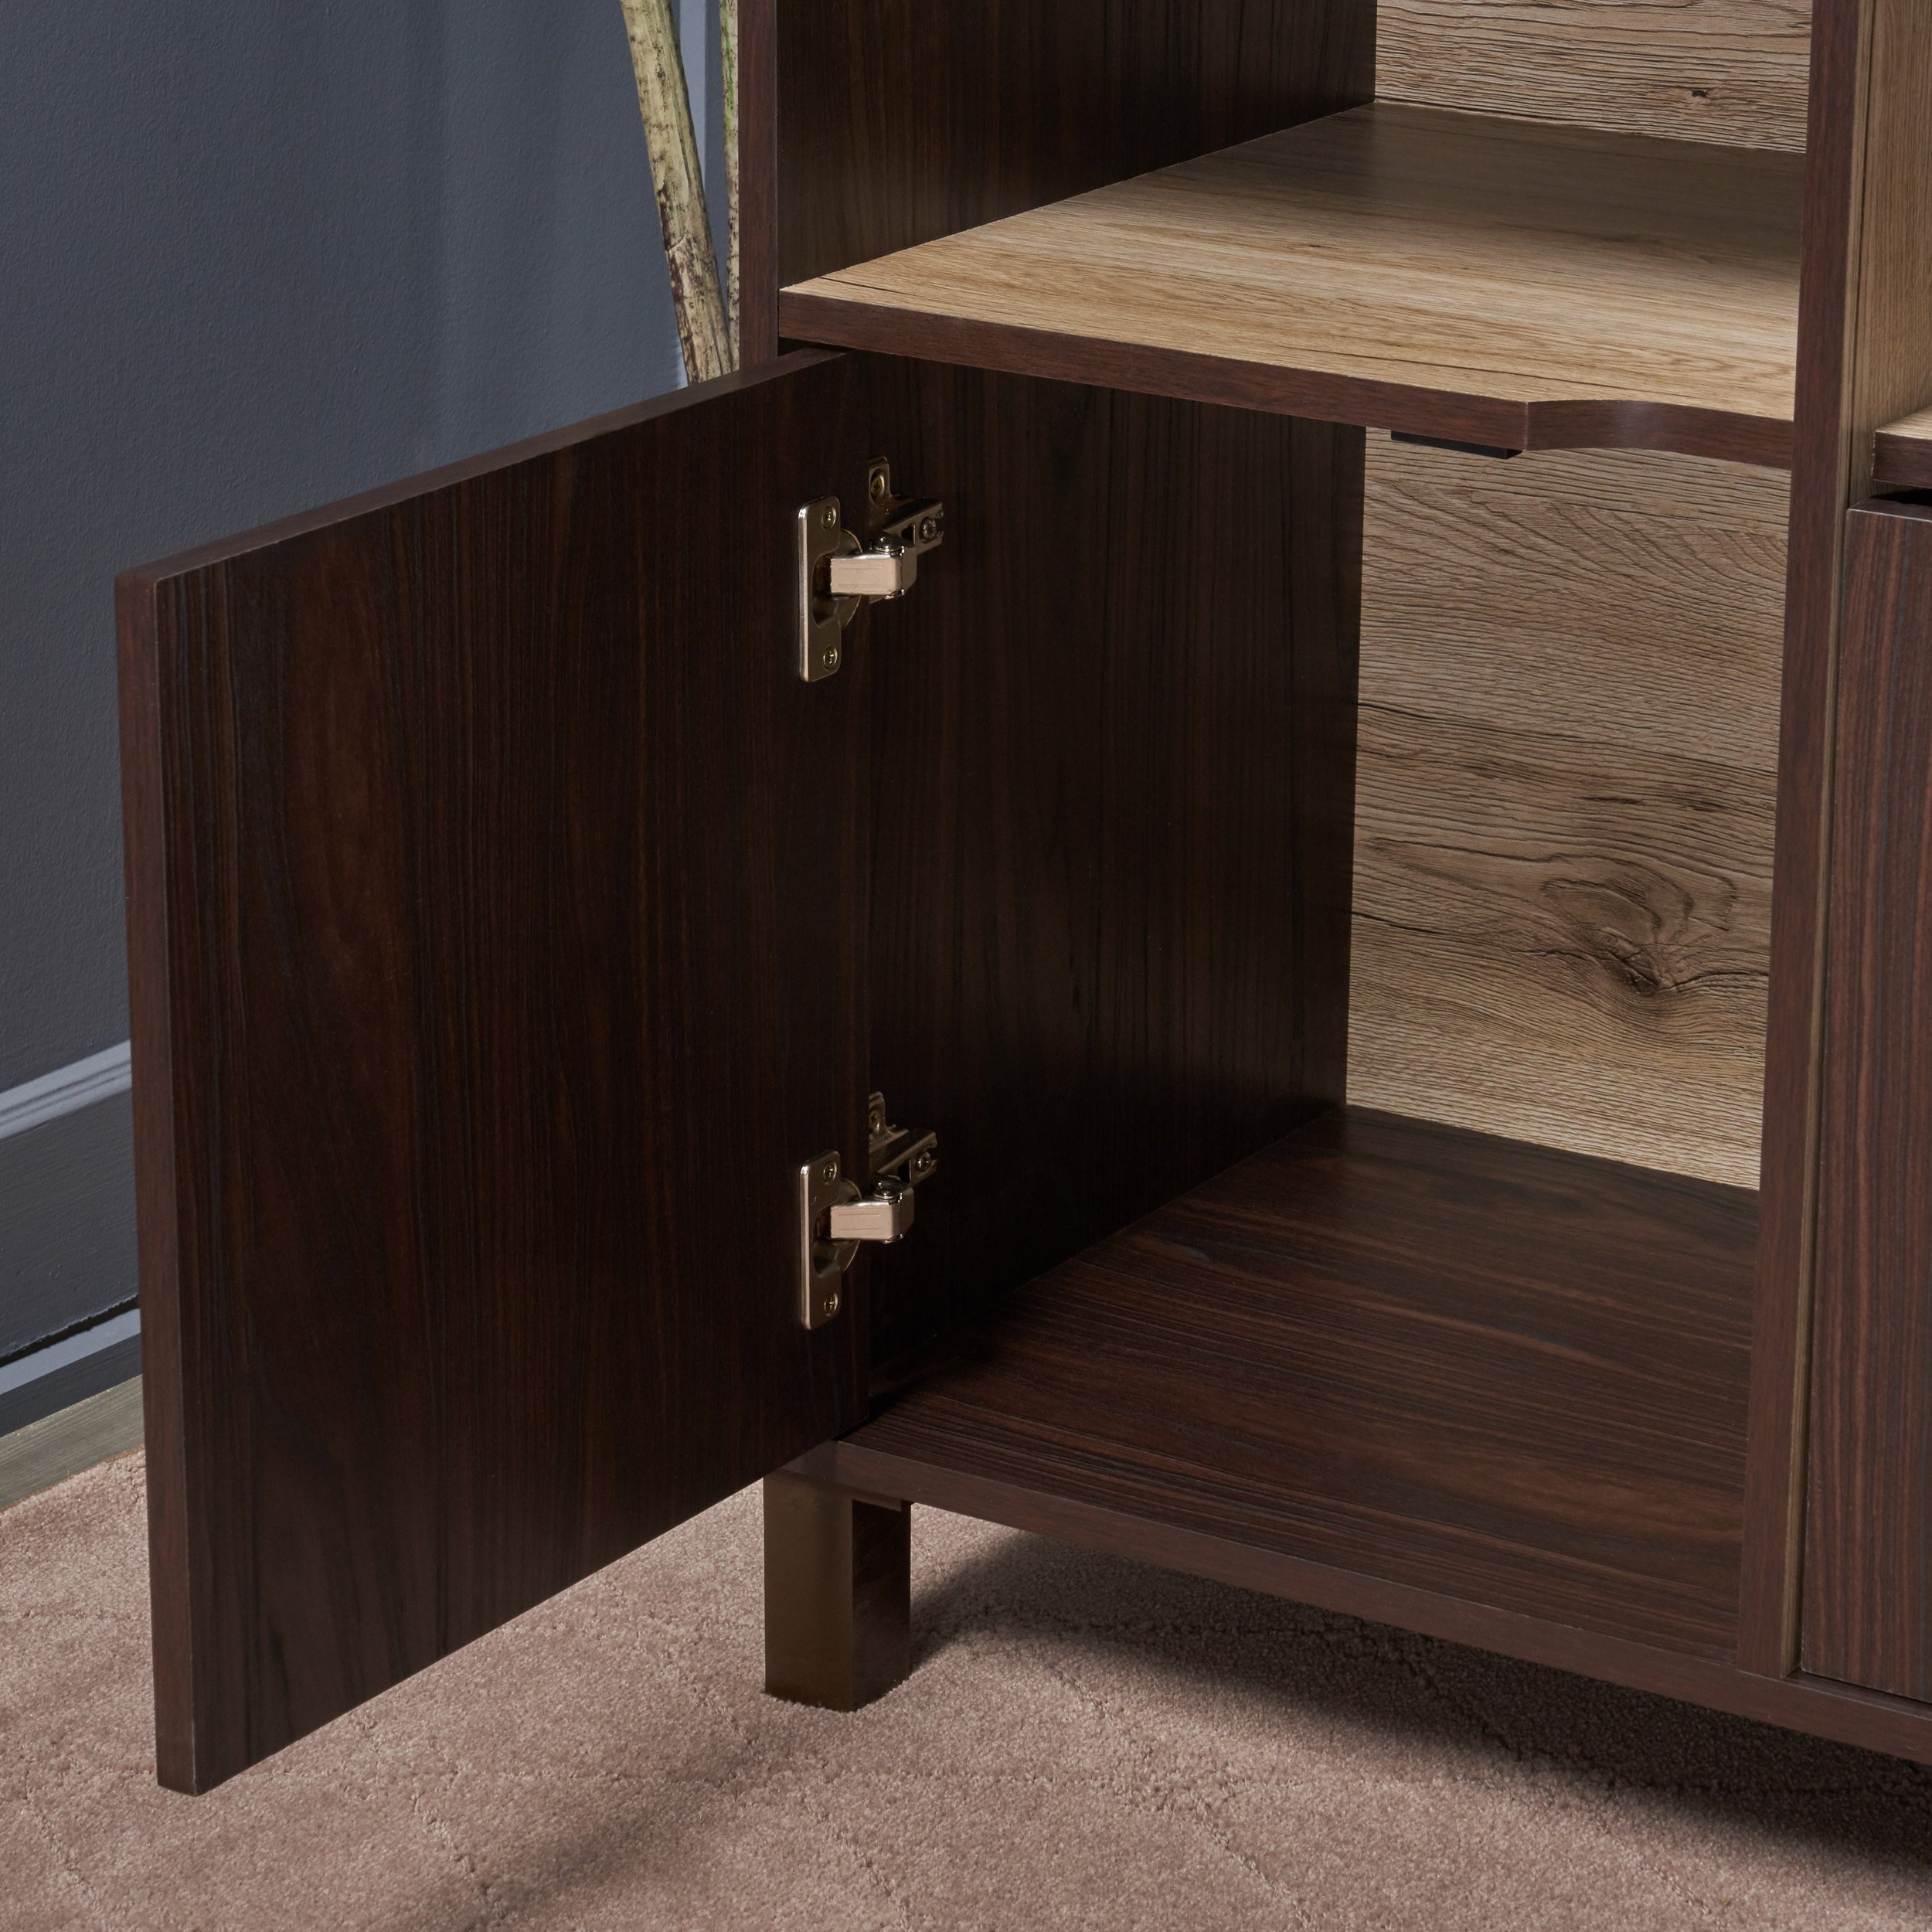 Provence 2-Shelf Walnut Finished Faux Wood Cabinet with Sanremo Oak Interior by Great Deal Furniture (Image #5)